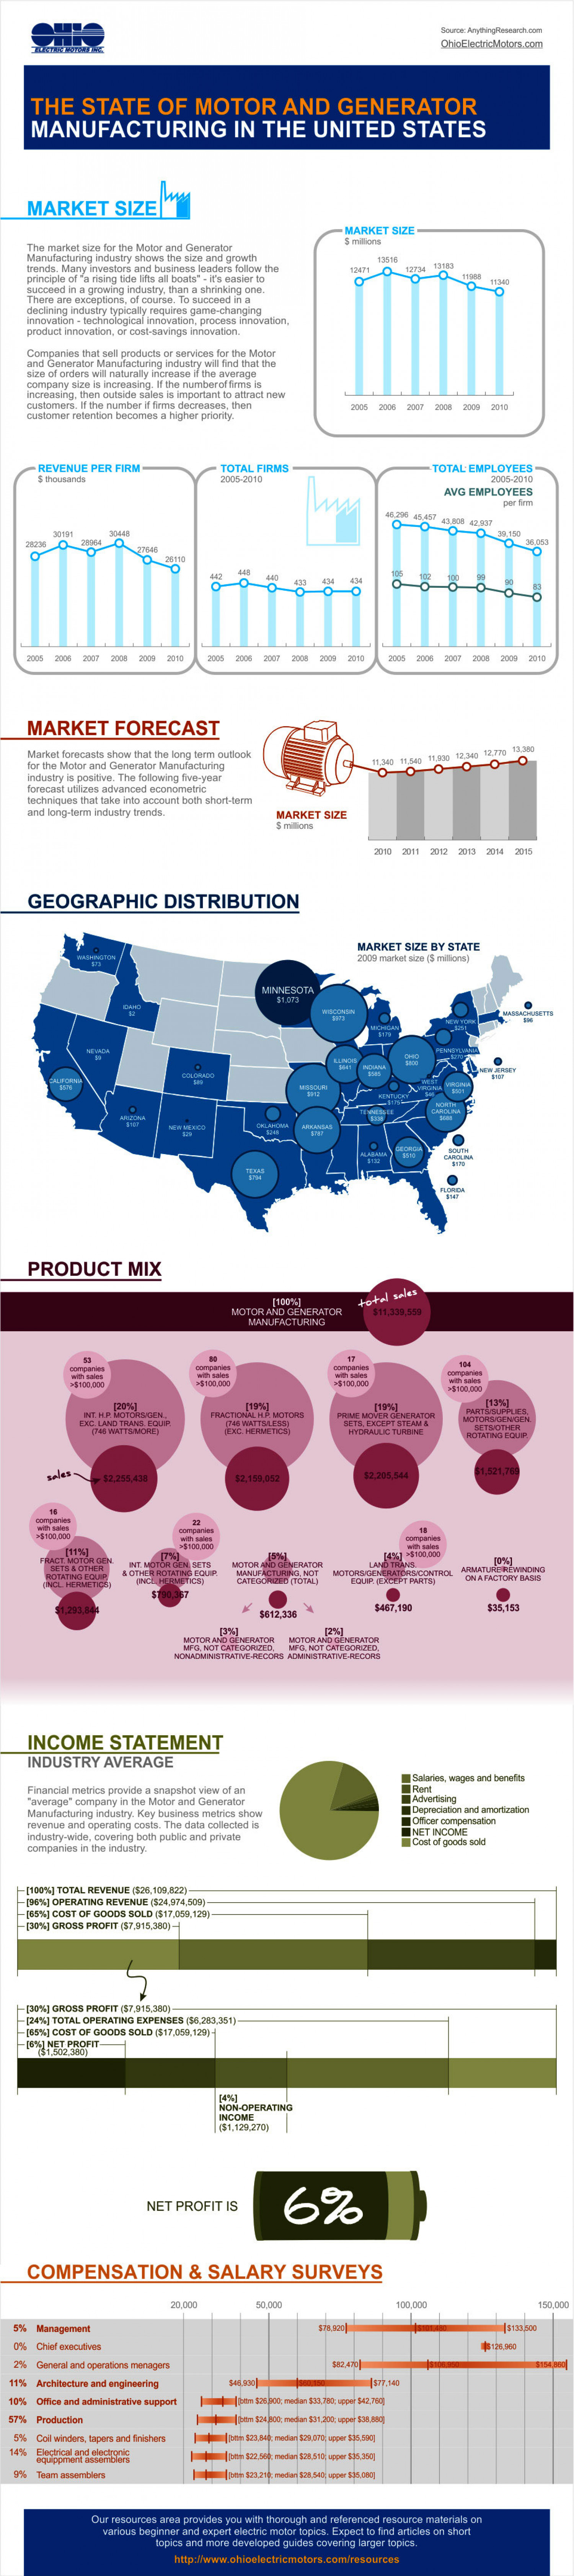 Motor and Generator Manufacturing in The United States Infographic